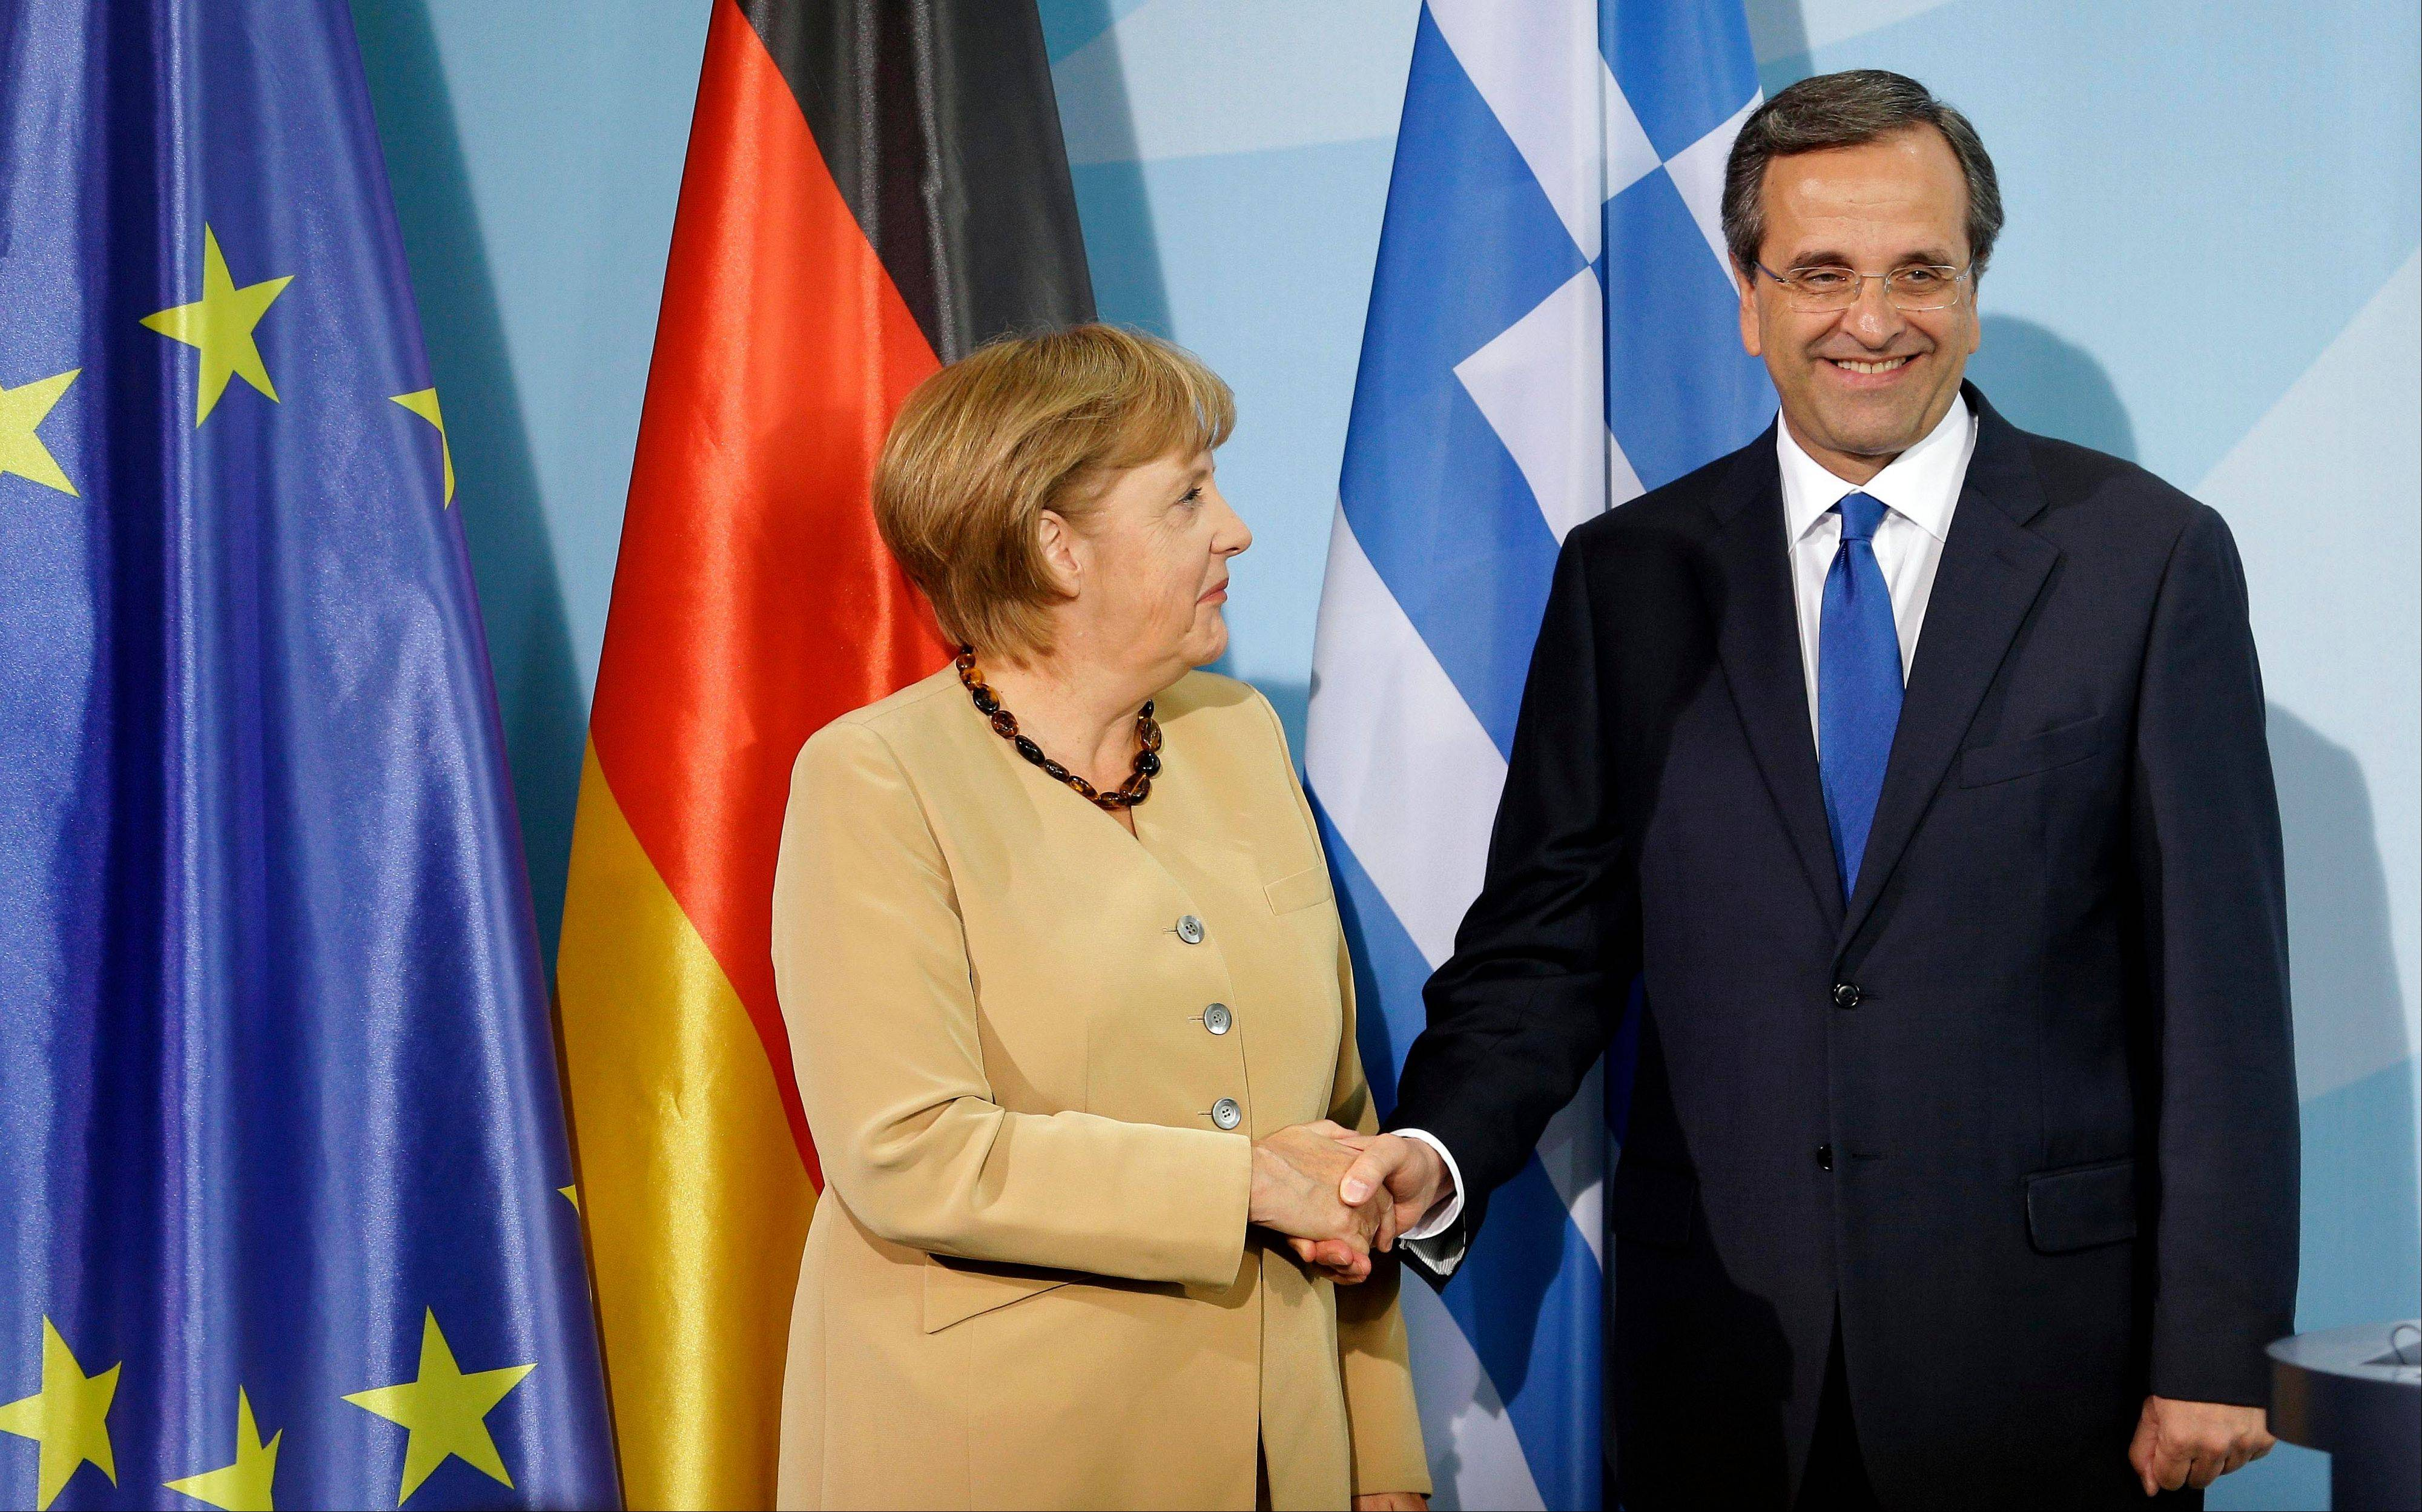 German Chancellor Angela Merkel and Prime Minister of Greece Antonis Samaras shake hands after a joint news conference as part of a meeting at the chancellery in Berlin, Germany.